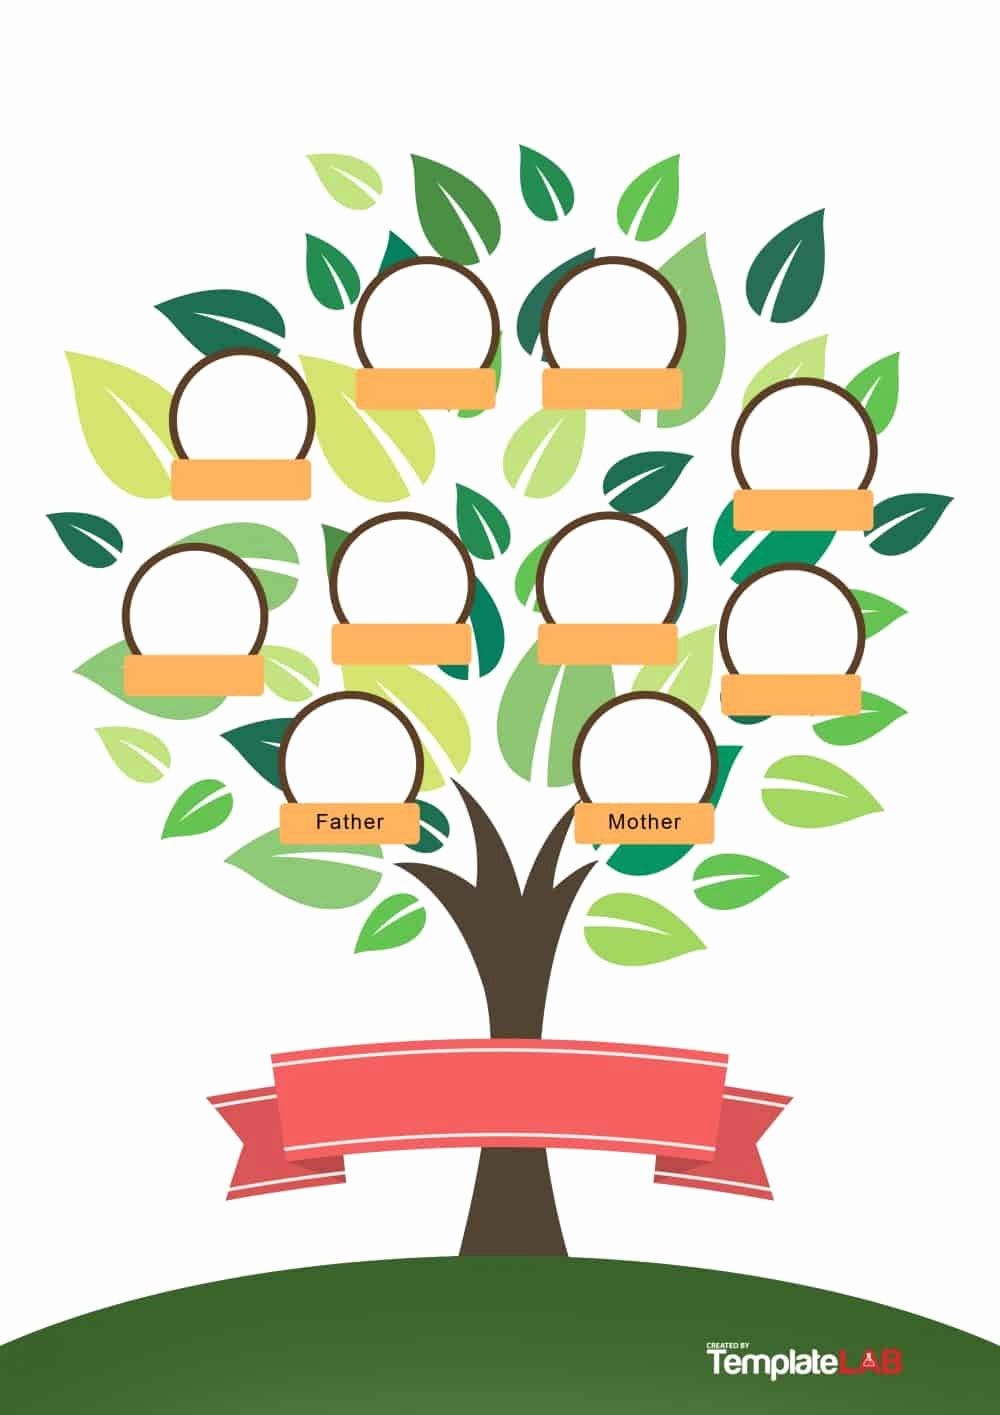 Family Tree Template Online Best Of 50 Free Family Tree Templates Word Excel Pdf